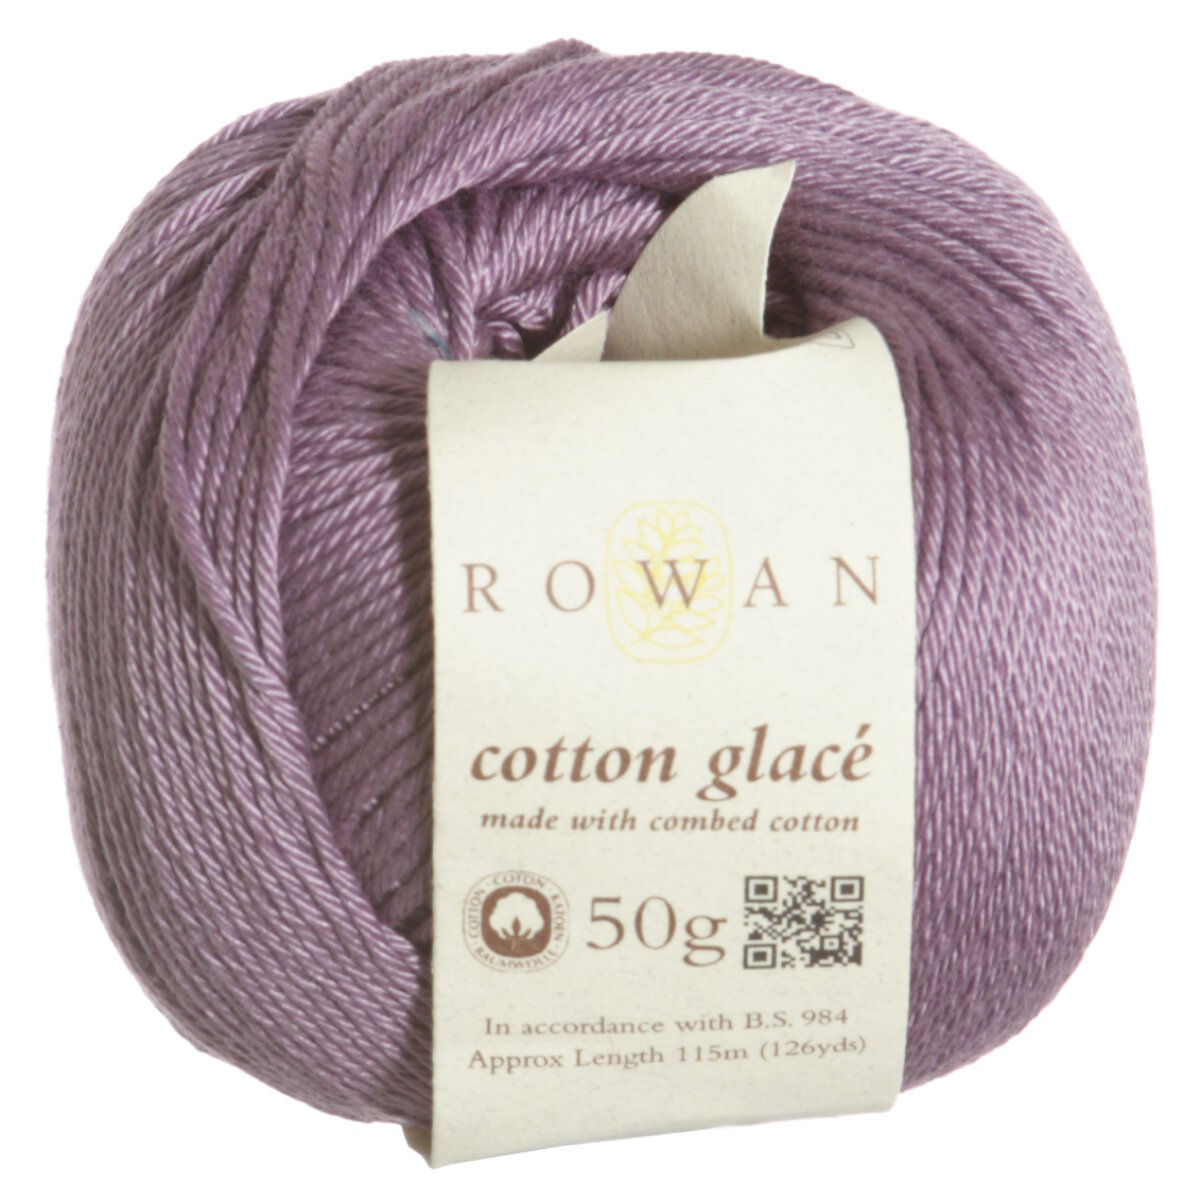 Rowan Cotton Glace 828 cotton glace Heather